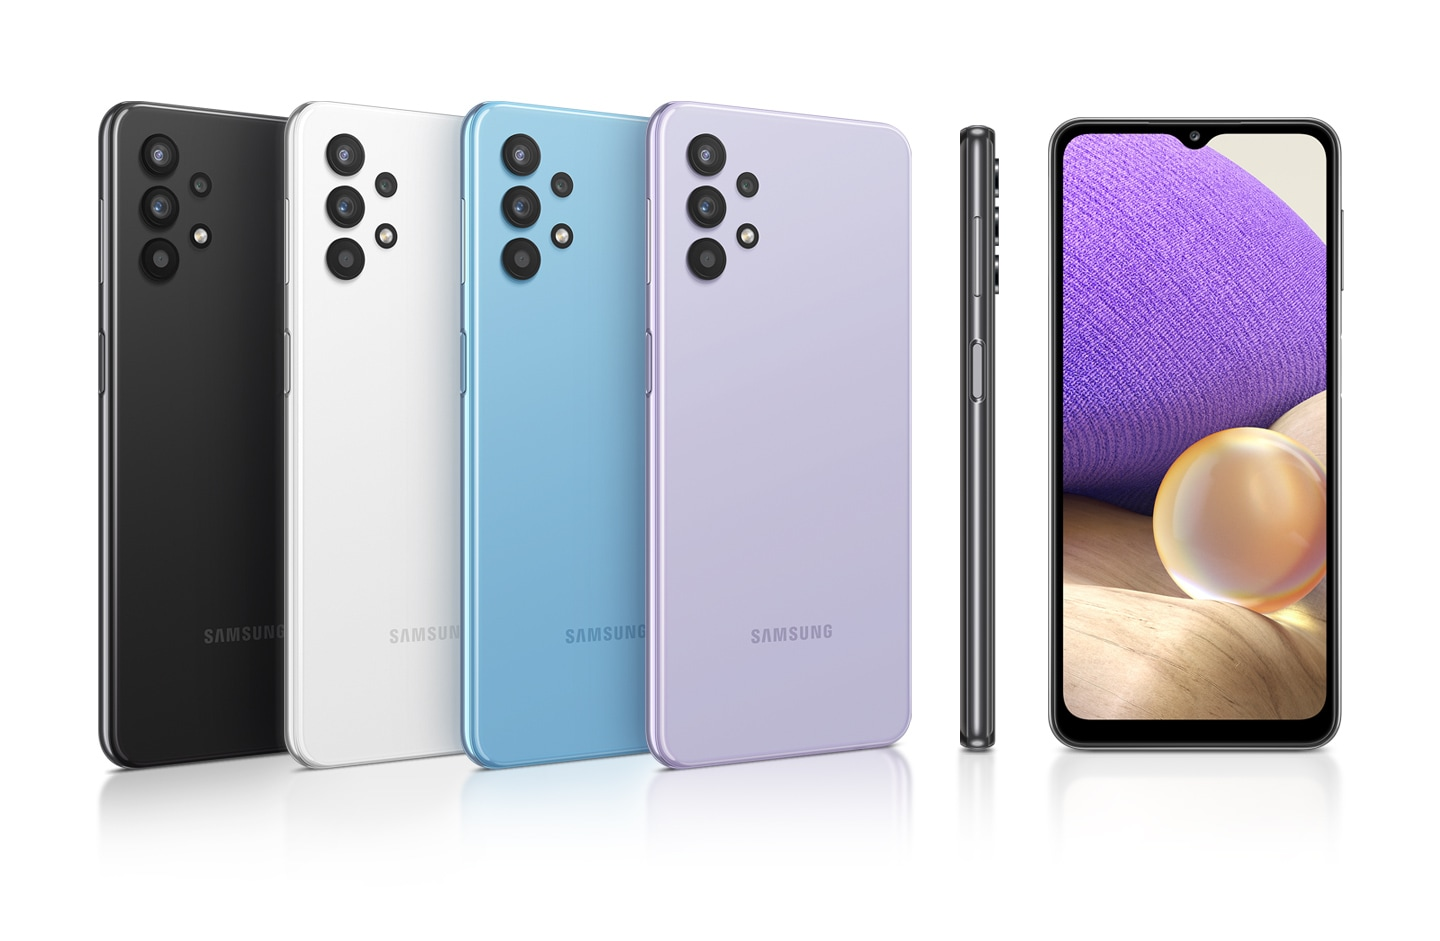 Six phones in Awesome Black, Awesome White, Awesome Blue and Awesome Violet, seen from different angles to show the design.